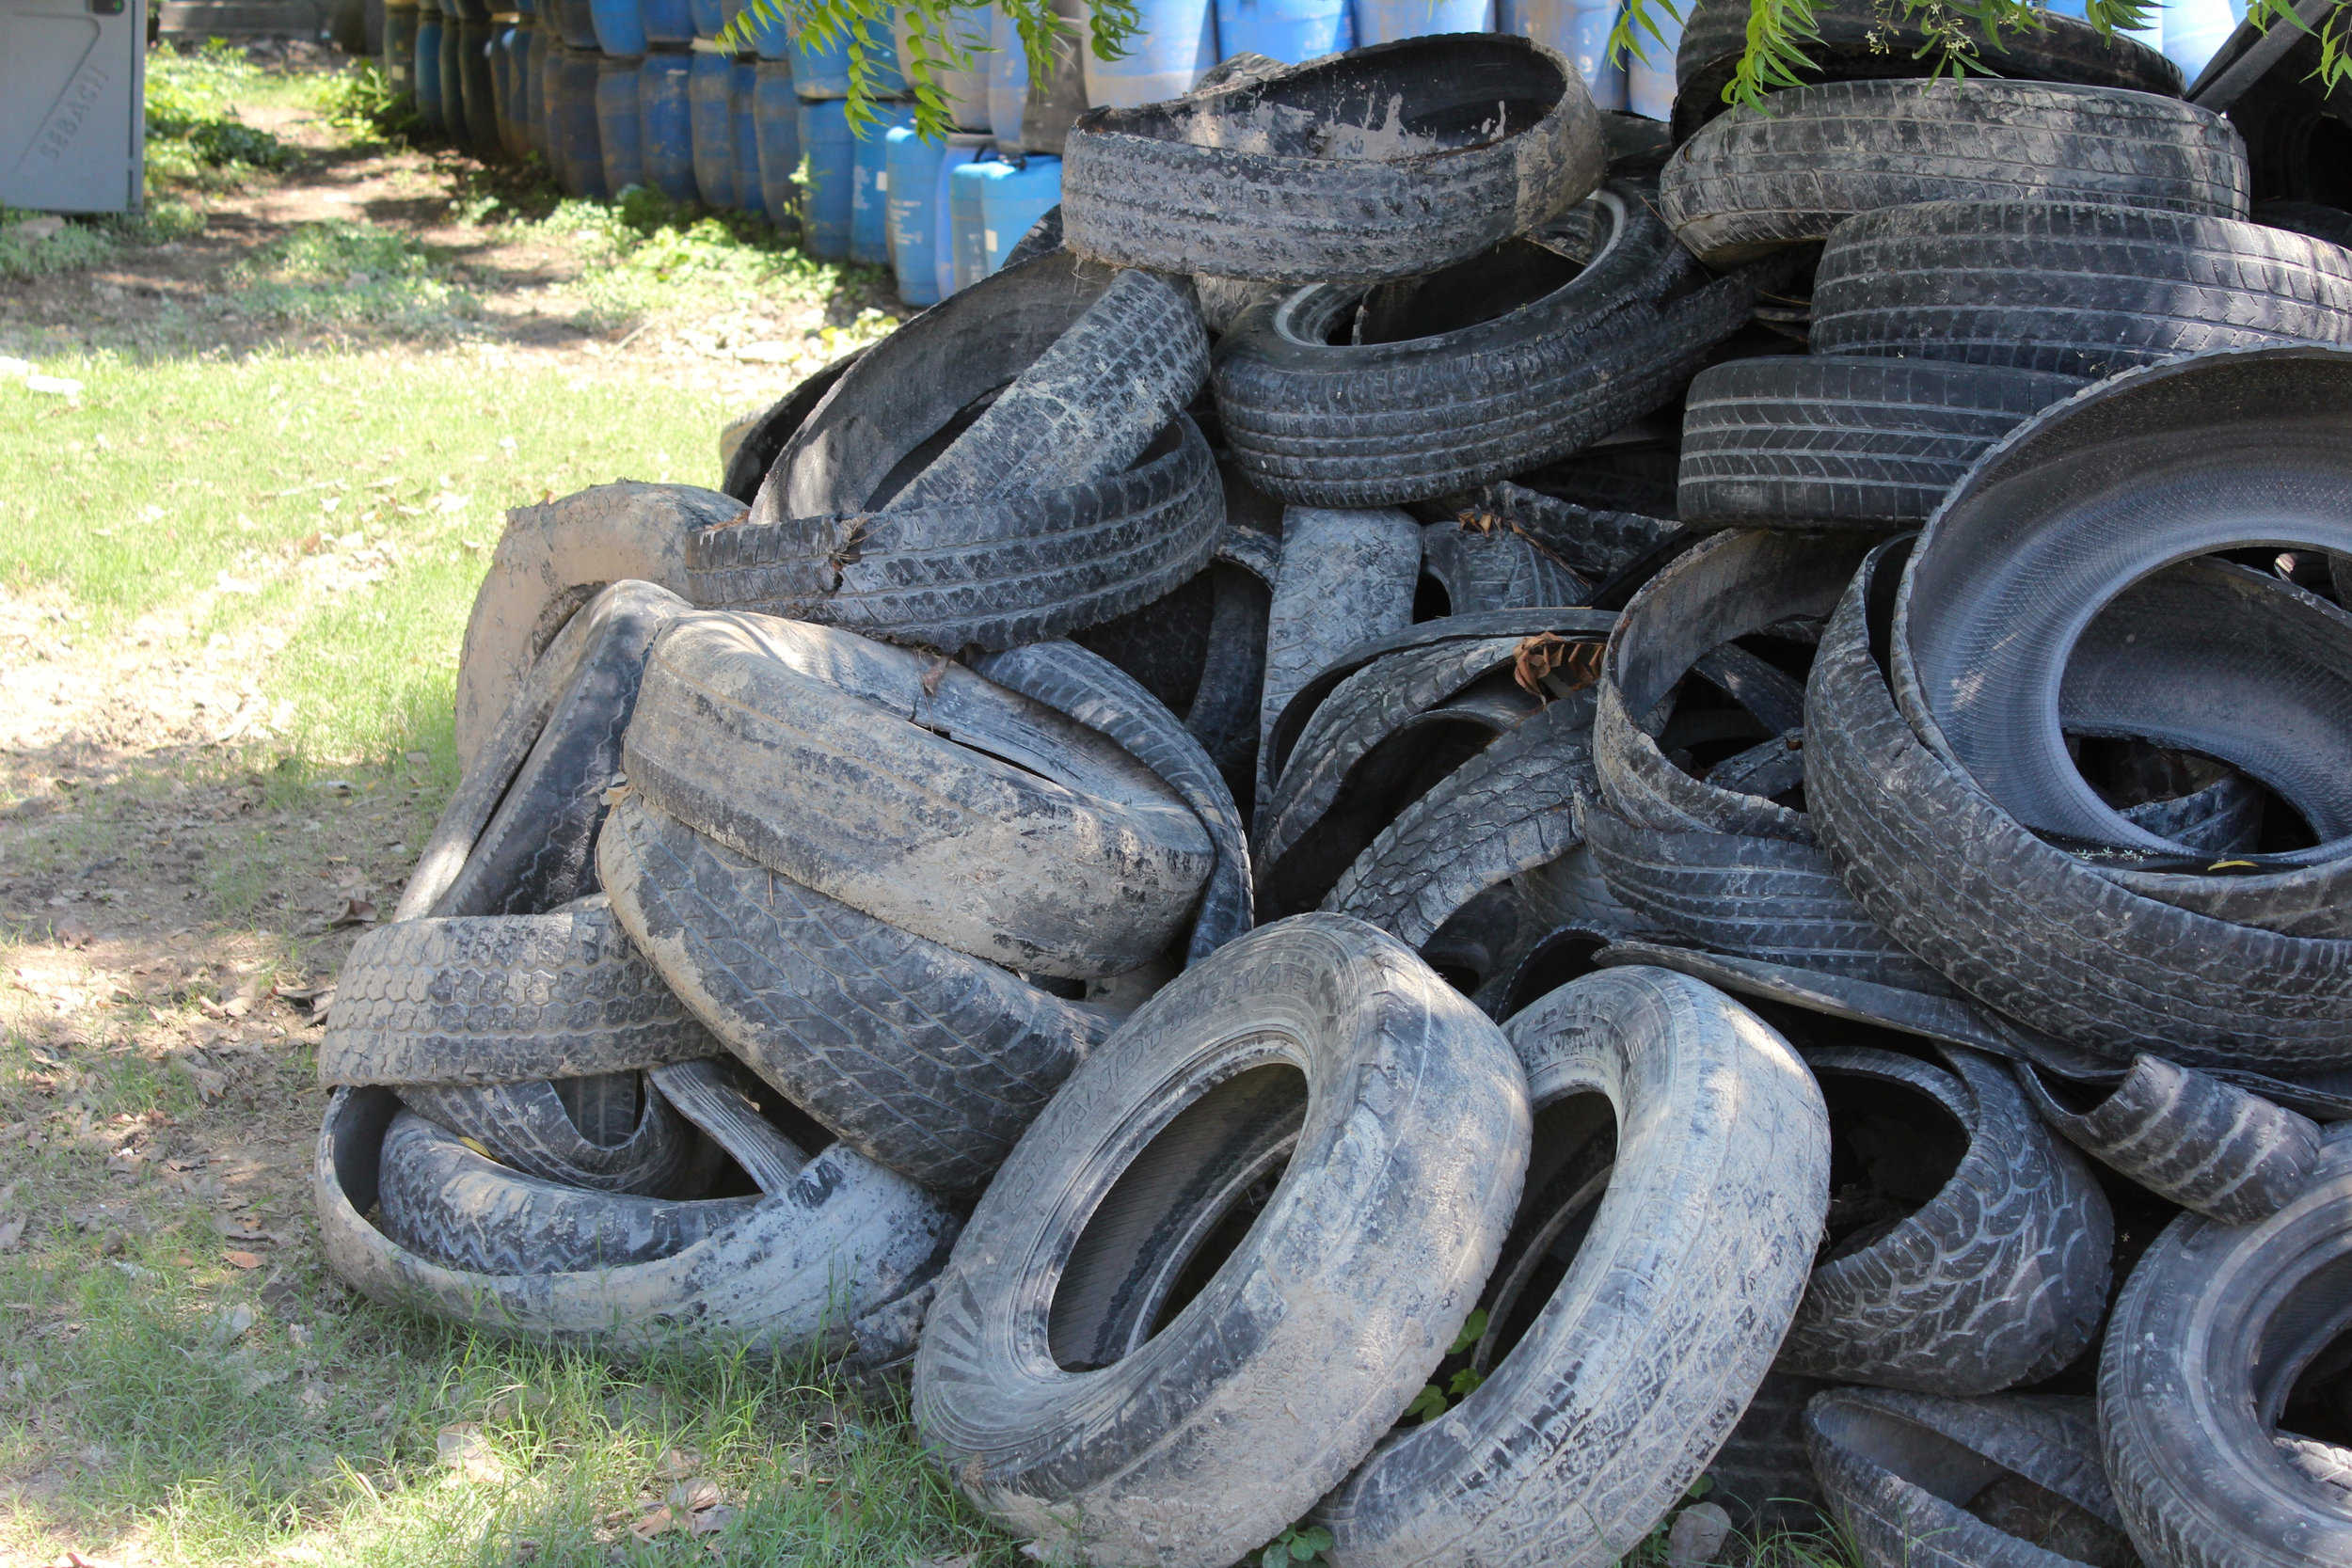 Tires waiting to be recycled into sandals. Photo: A Bergamin